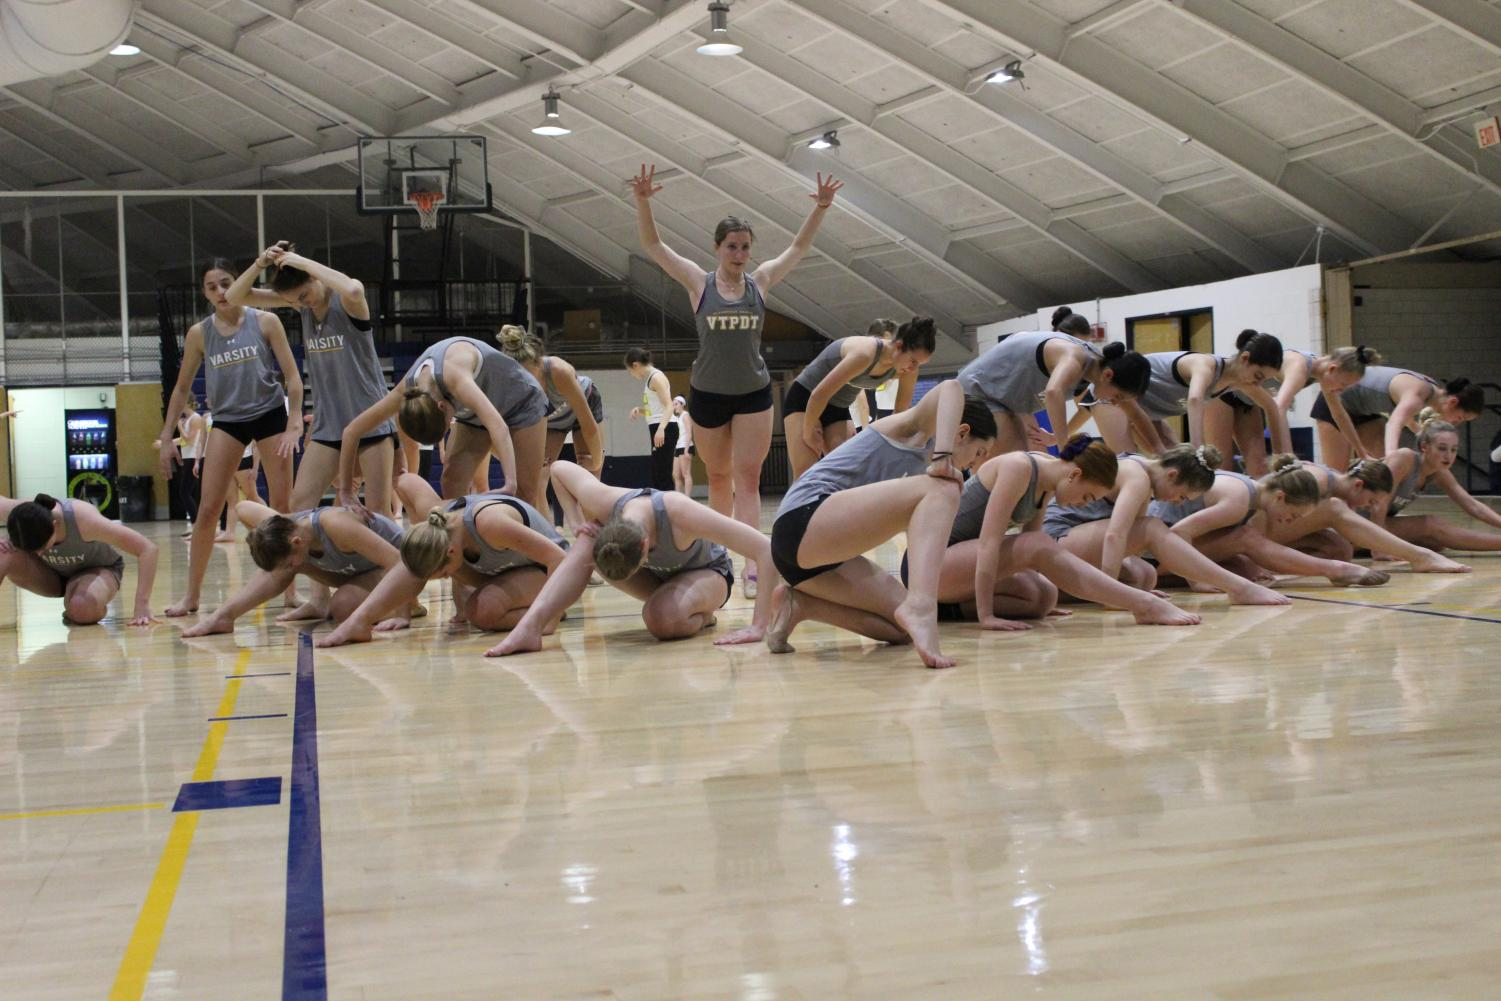 In their ending pose, the varsity Poms team practices their jazz dance routine preparing for their upcoming local competitions as well as National competition in Orlando, Florida.